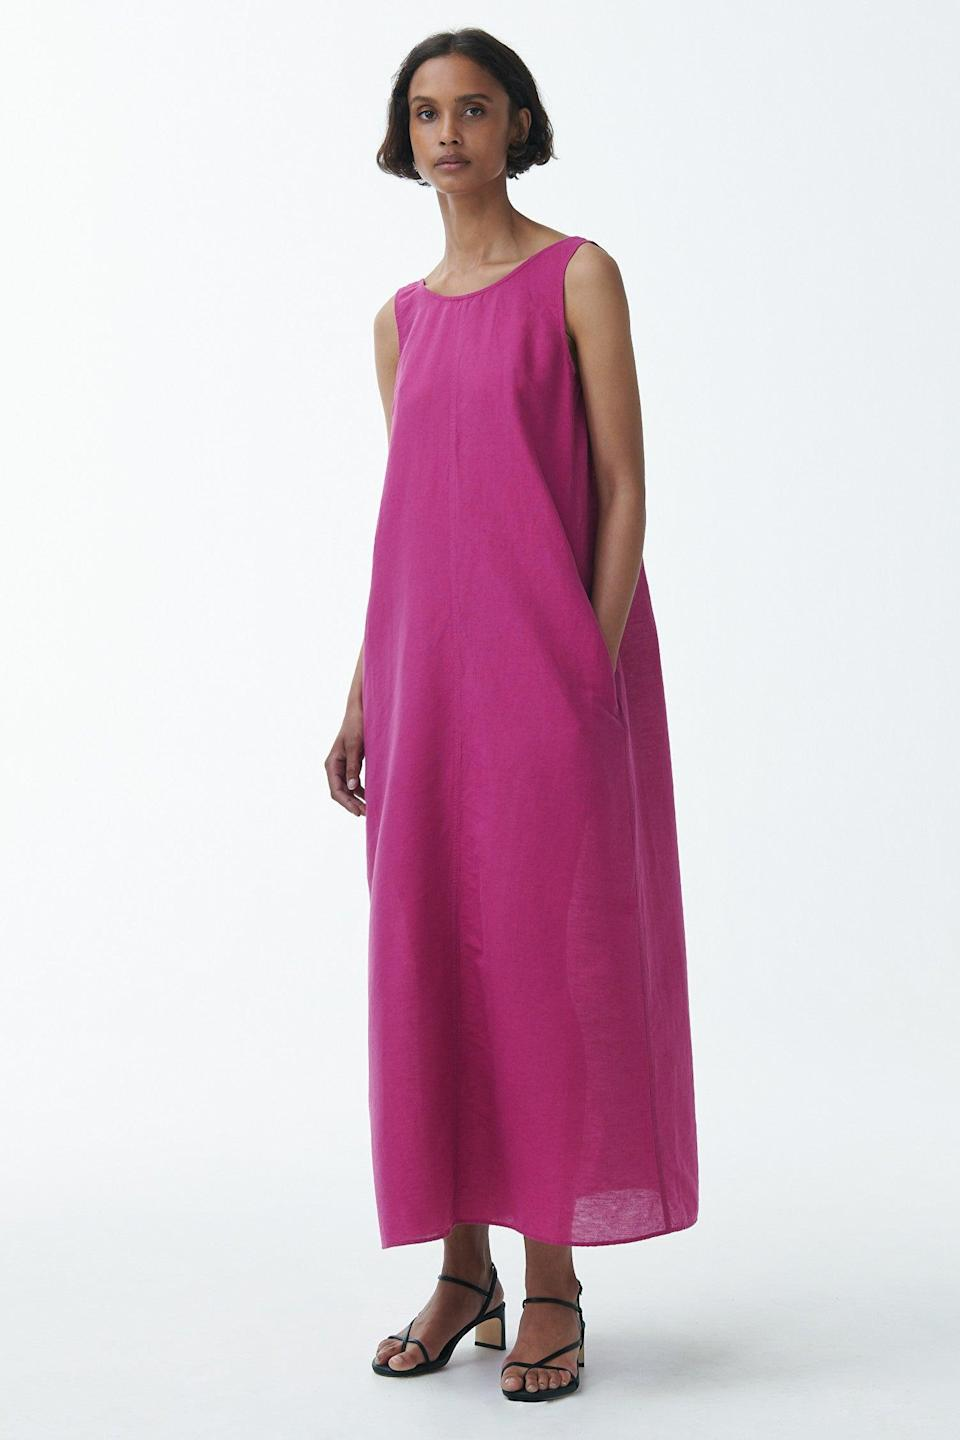 """We pulled this bright, beautiful maxi dress out of COS's latest linen edit — the demure front belies a dangerously plunging back that gives this modest silhouette a sensual boost. There's plenty more linen where this came from, all rendered with COS's signature Scandi-flavored restraint. <br><br><em>Shop linen at <strong><a href=""""https://www.cosstores.com/en_usd/women/the-edit.html"""" rel=""""nofollow noopener"""" target=""""_blank"""" data-ylk=""""slk:COS"""" class=""""link rapid-noclick-resp"""">COS</a></strong></em><br><br><strong>COS</strong> Exposed Back Maxi Dress, $, available at <a href=""""https://go.skimresources.com/?id=30283X879131&url=https%3A%2F%2Fwww.cosstores.com%2Fen_usd%2Fwomen%2Fwomenswear%2Fdresses%2Fproduct.linen-exposed-back-maxi-dress-purple.0895246001.html"""" rel=""""nofollow noopener"""" target=""""_blank"""" data-ylk=""""slk:COS"""" class=""""link rapid-noclick-resp"""">COS</a><br><br>"""